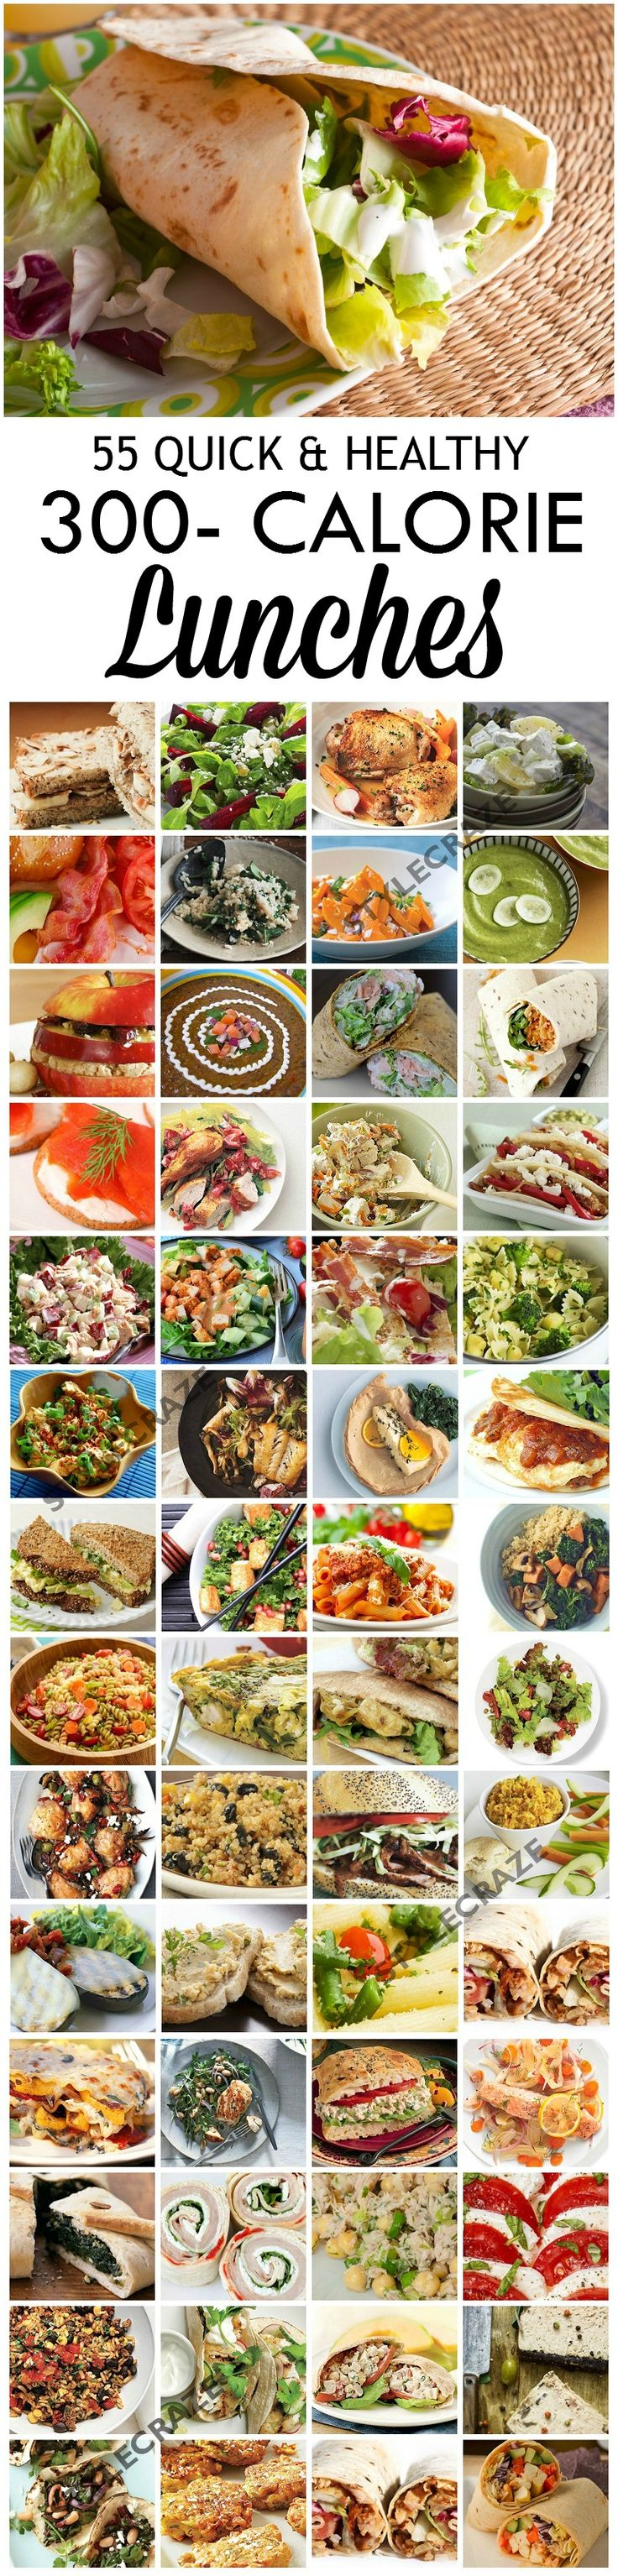 55 Quick & Healthy 300 Calorie Lunches #organize #mealplanning #weightloss